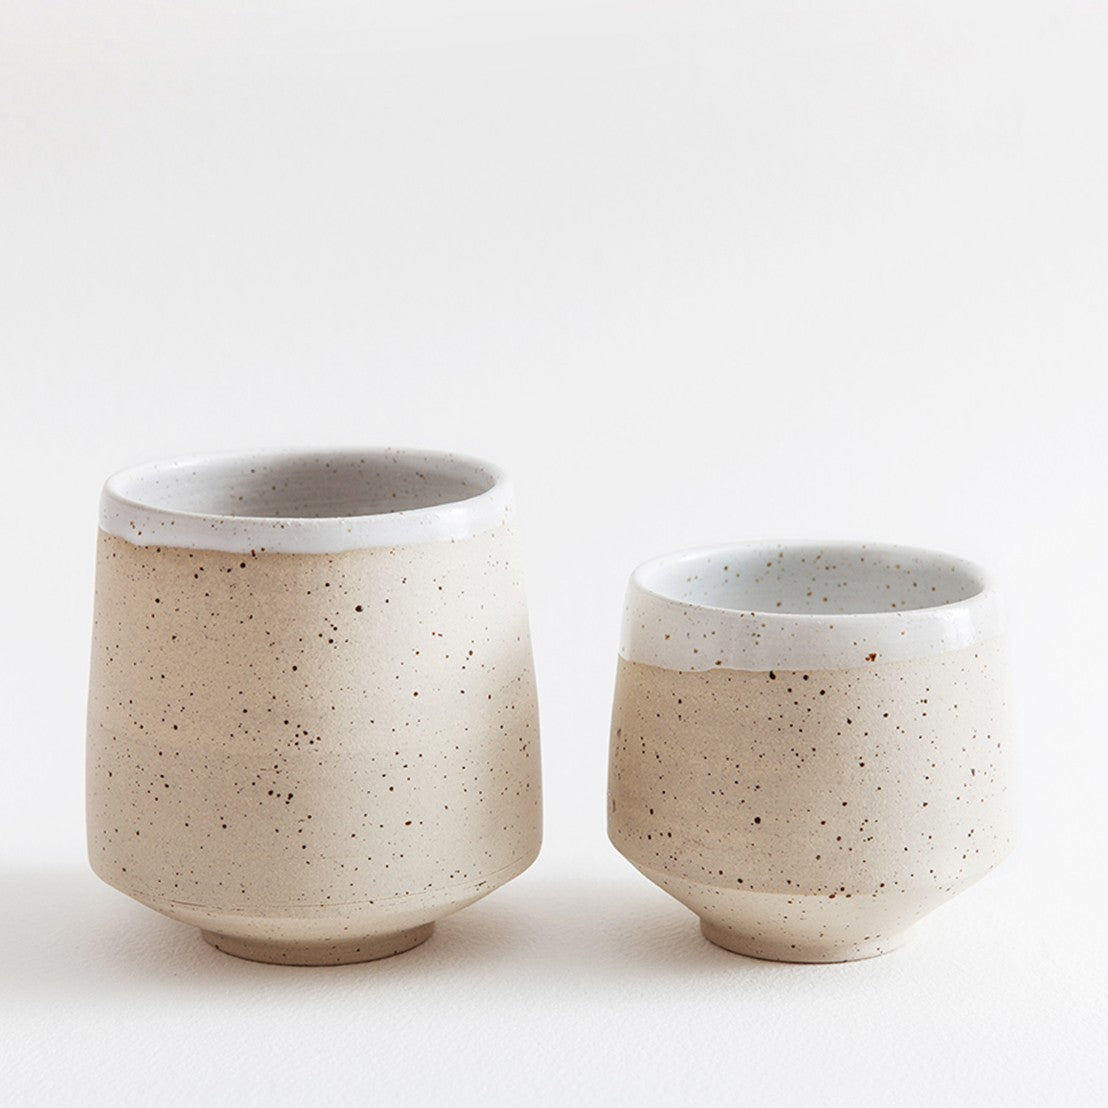 Two speckled mugs